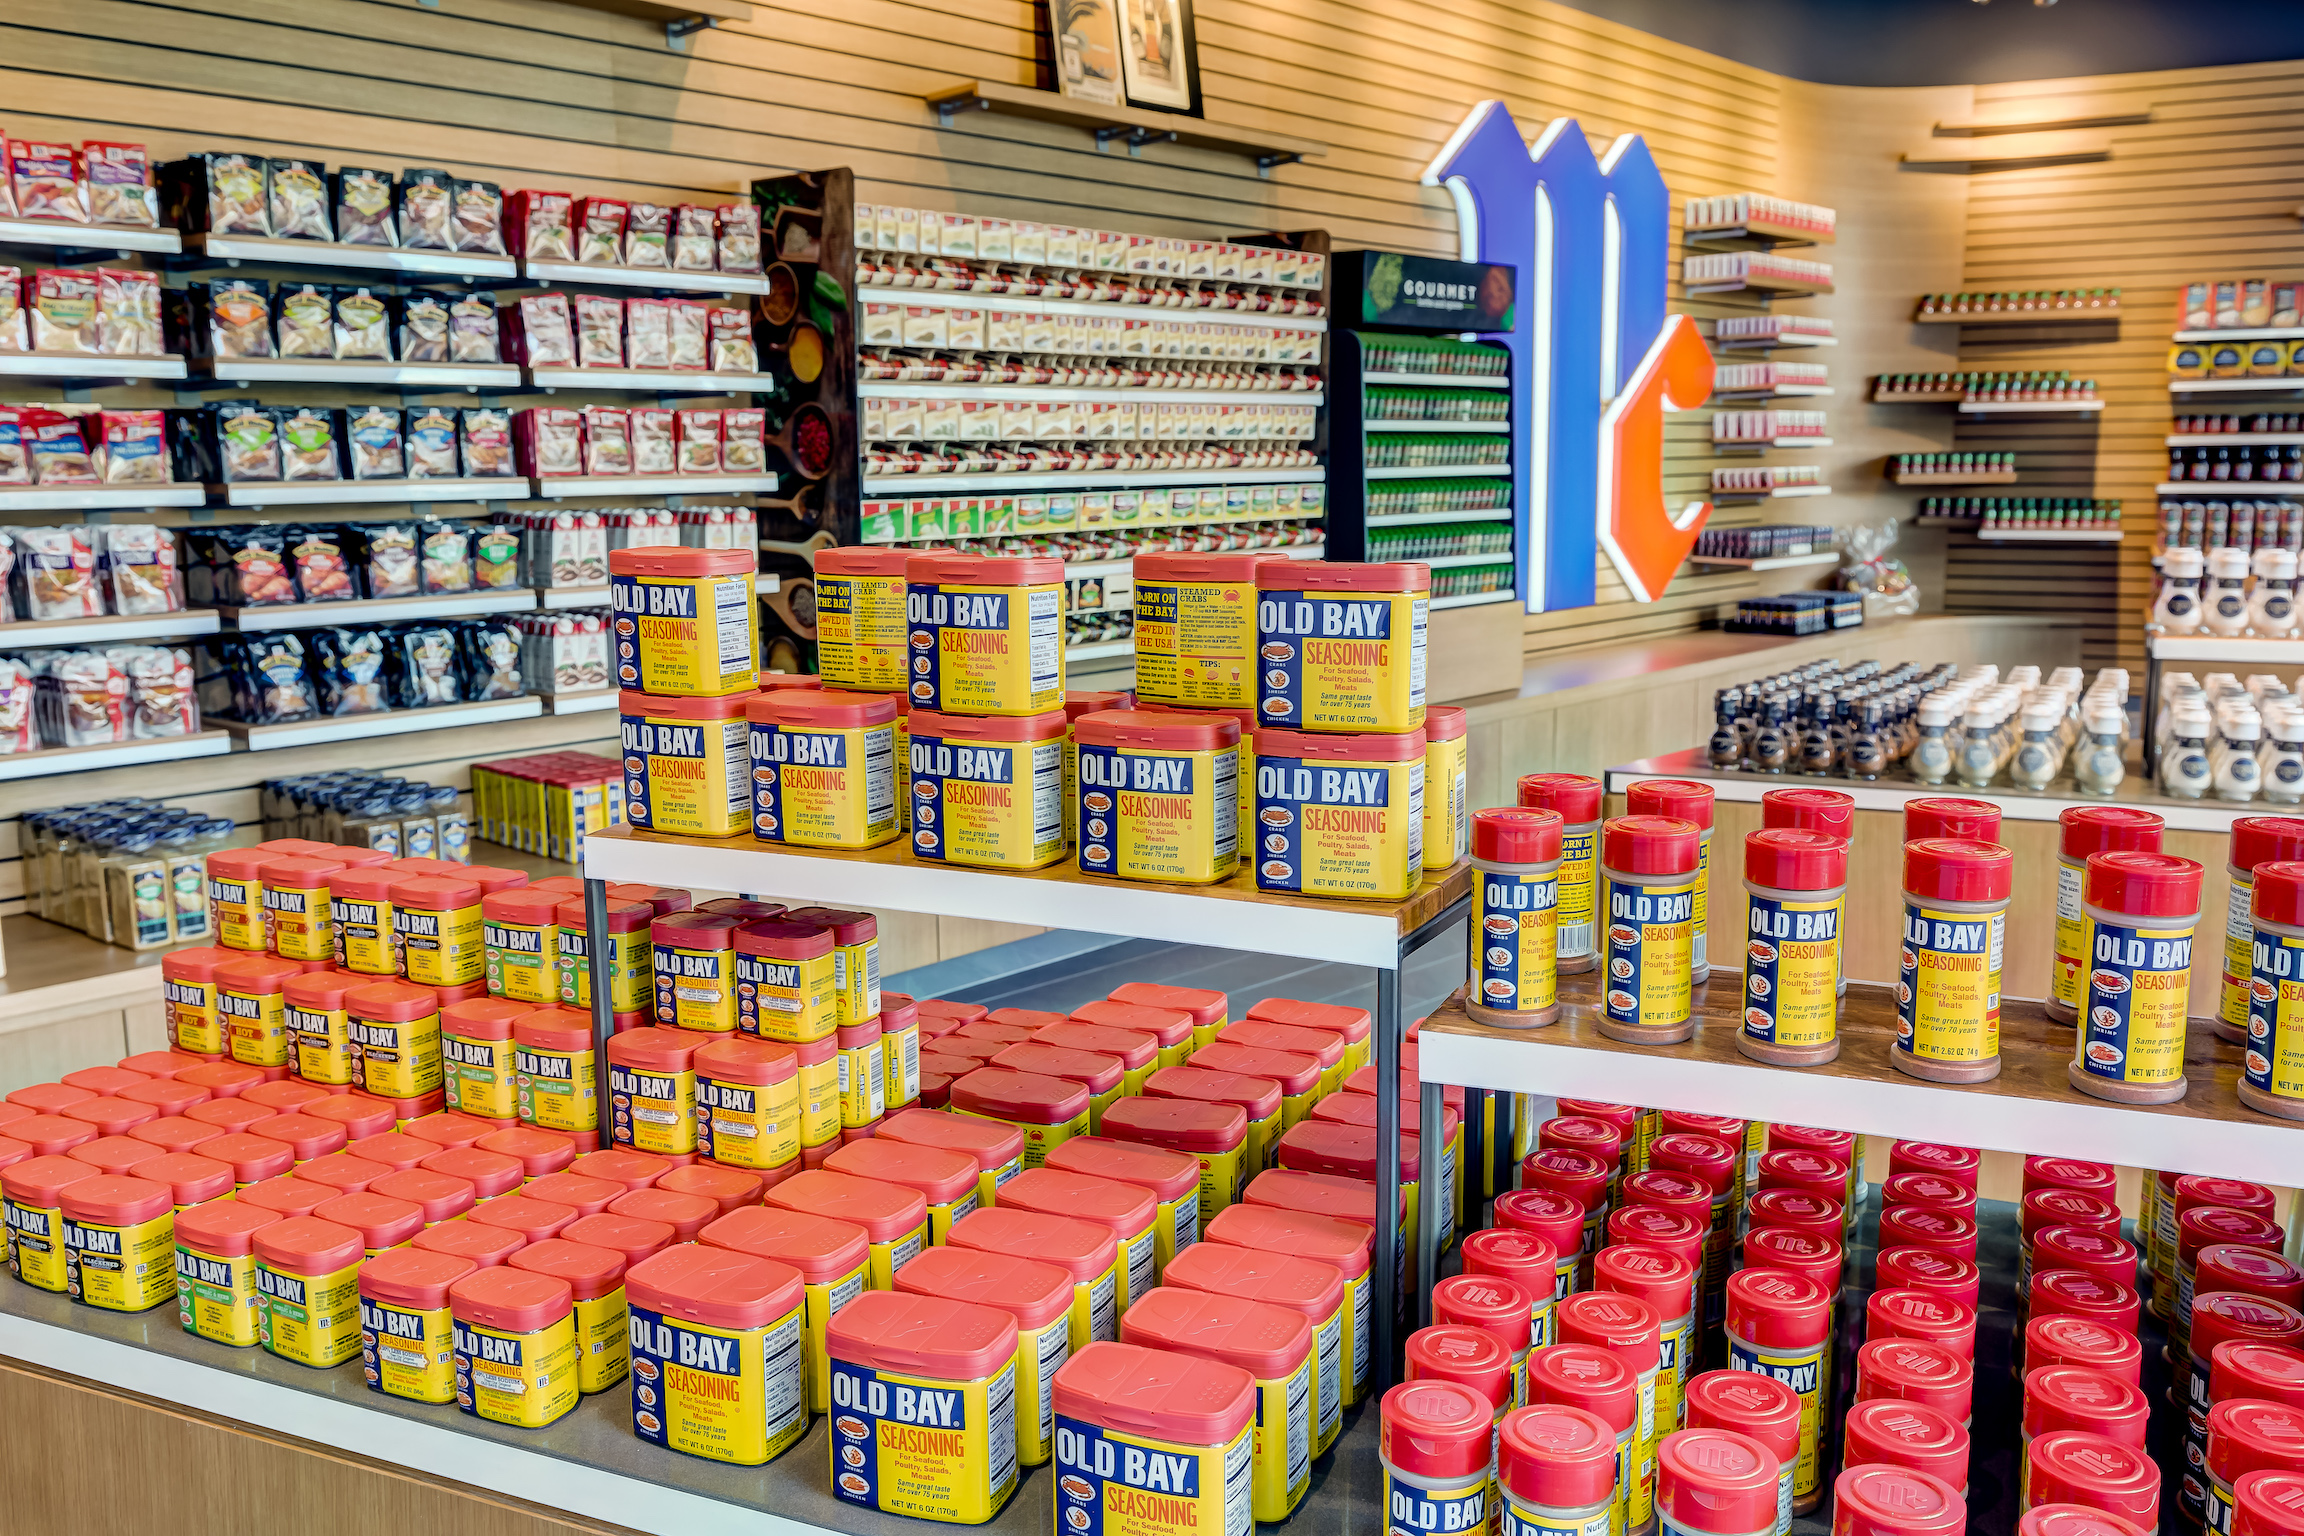 McCormick products affected by its partnership with the IBM